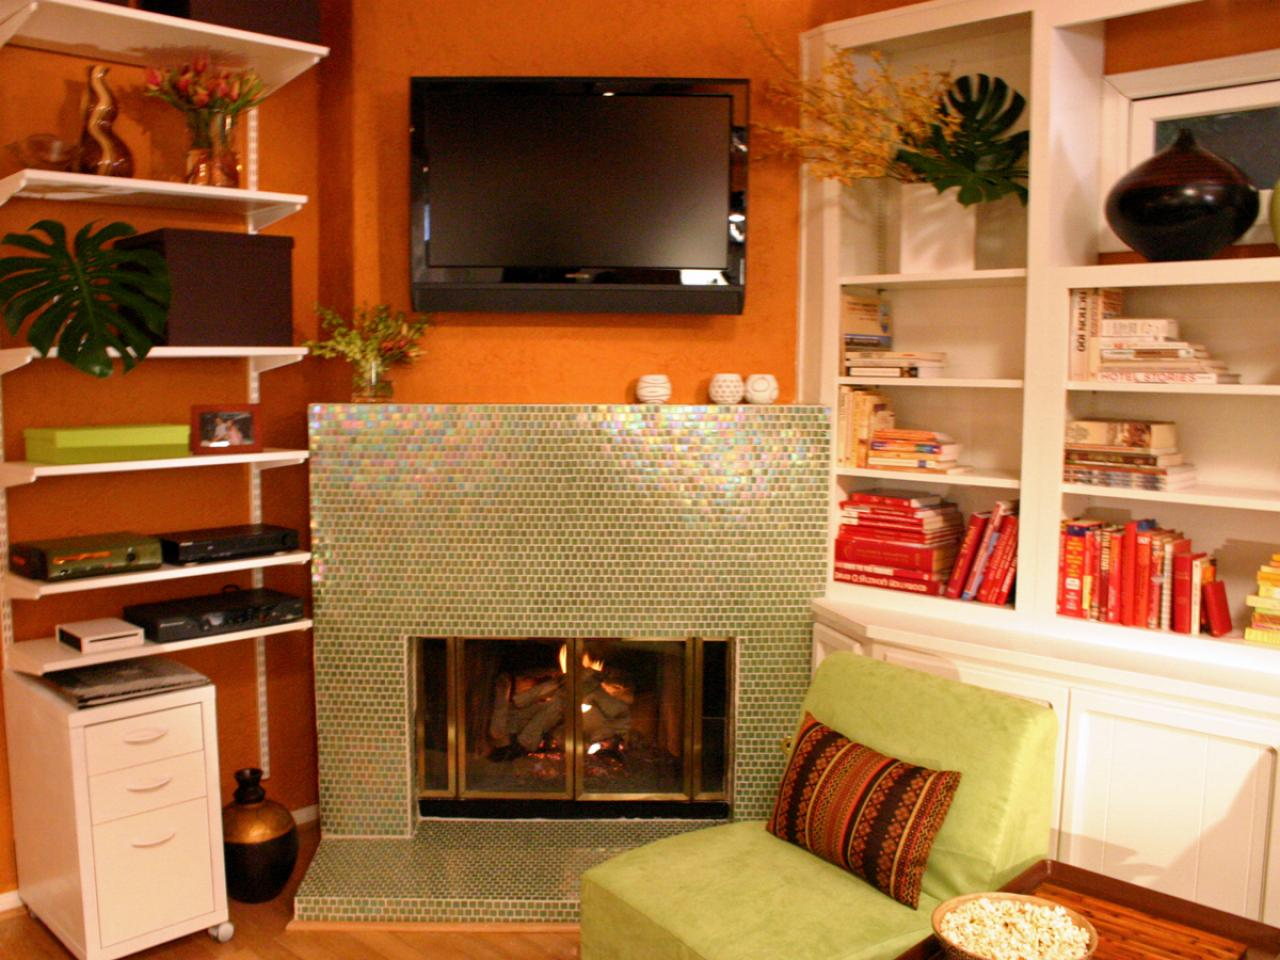 Hot fireplace design ideas diy home decor and decorating for Diy fireplace remodel ideas